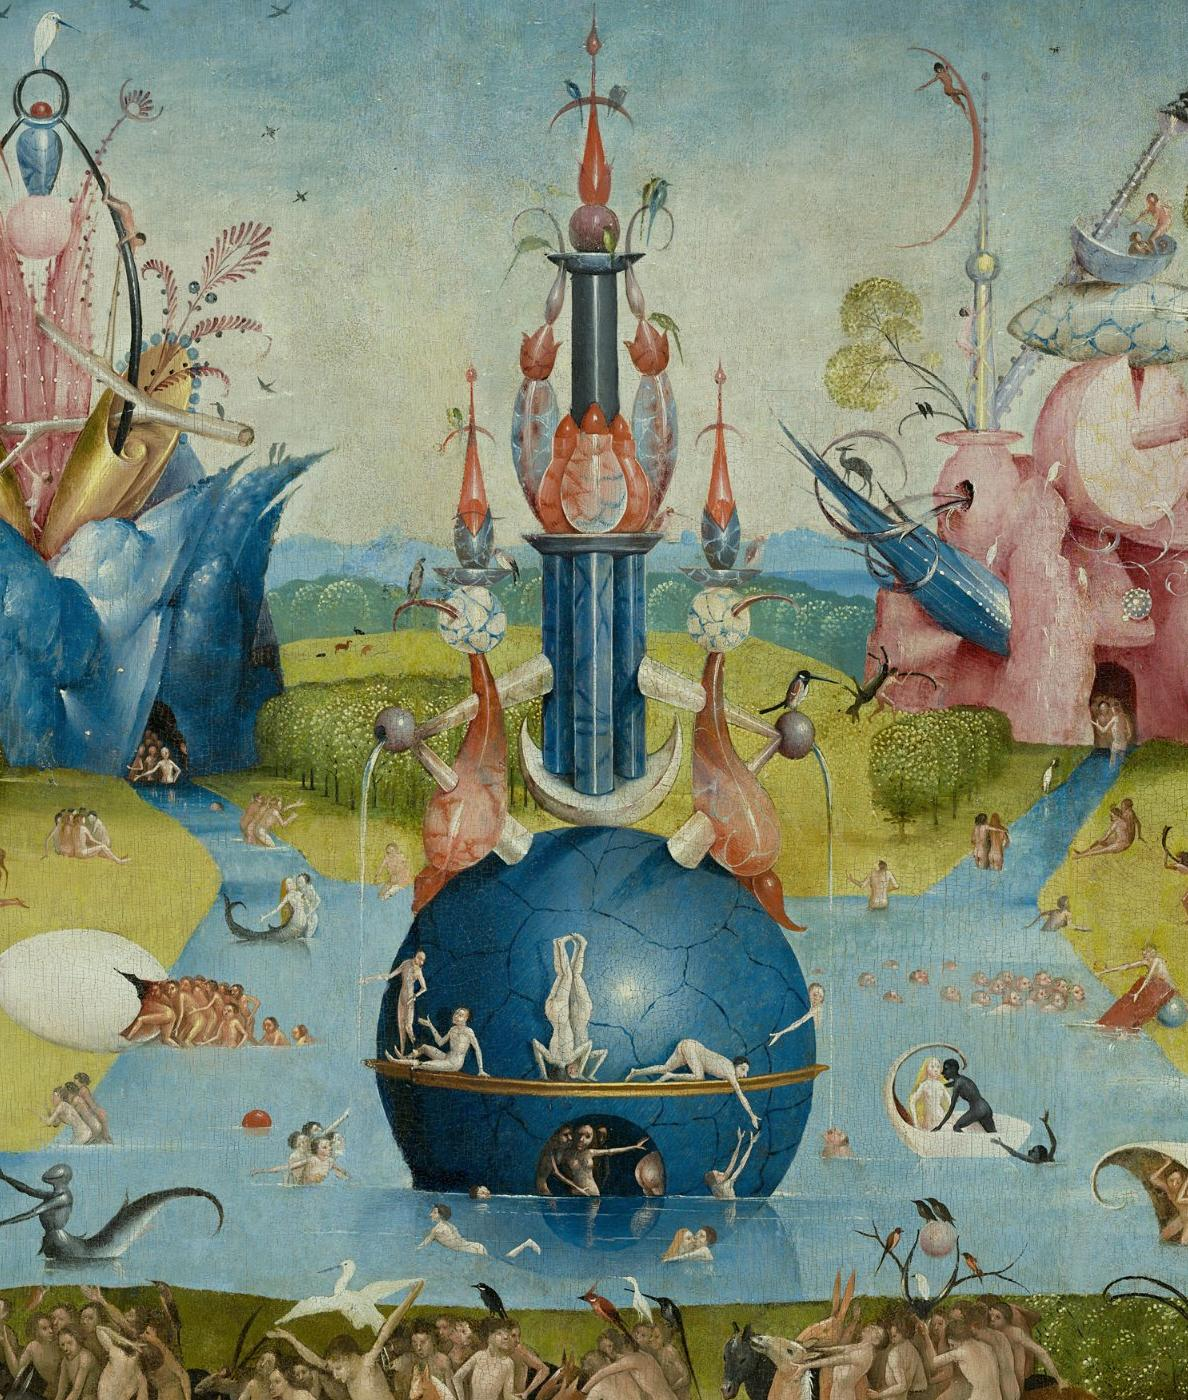 Hieronymus Bosch - The Garden of Earthly Delights(1500-1510, 中幅「塵世」局部)